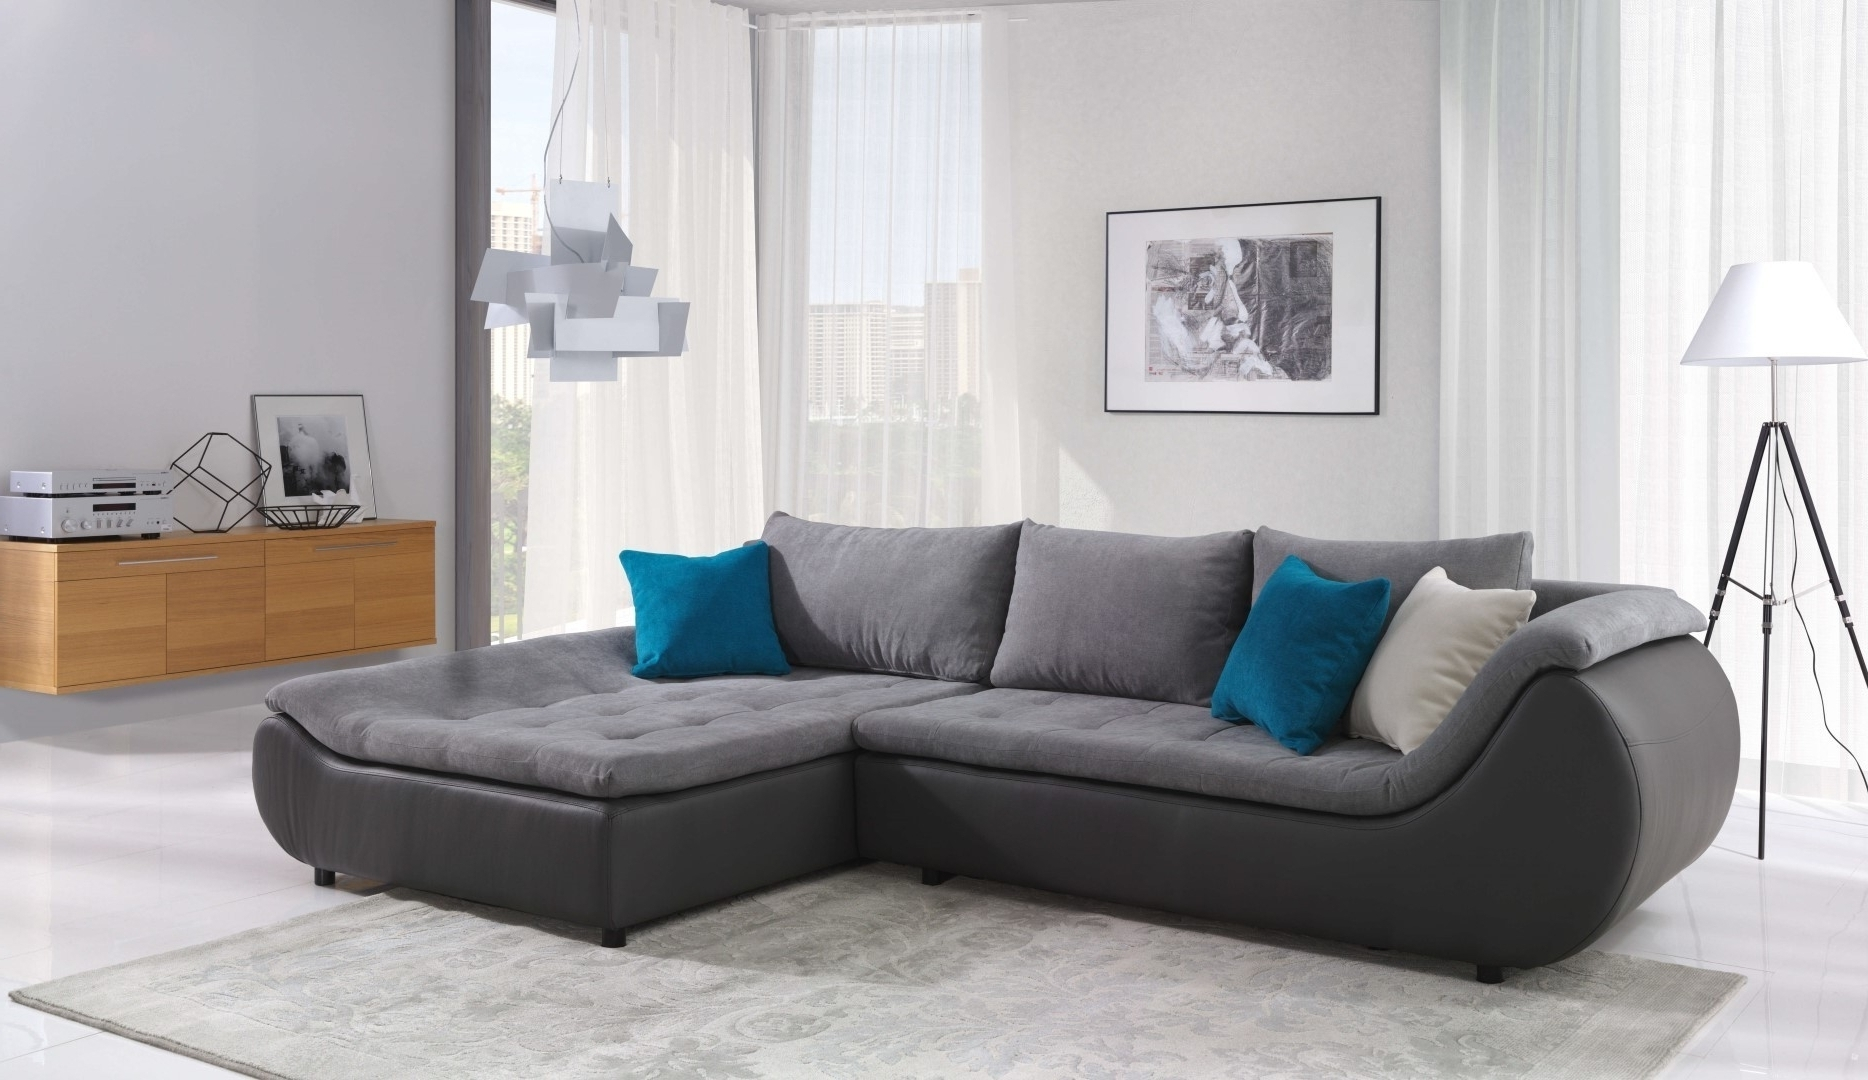 Trendy Collection Sectional Sofas Rochester Ny – Mediasupload Pertaining To Rochester Ny Sectional Sofas (View 2 of 15)